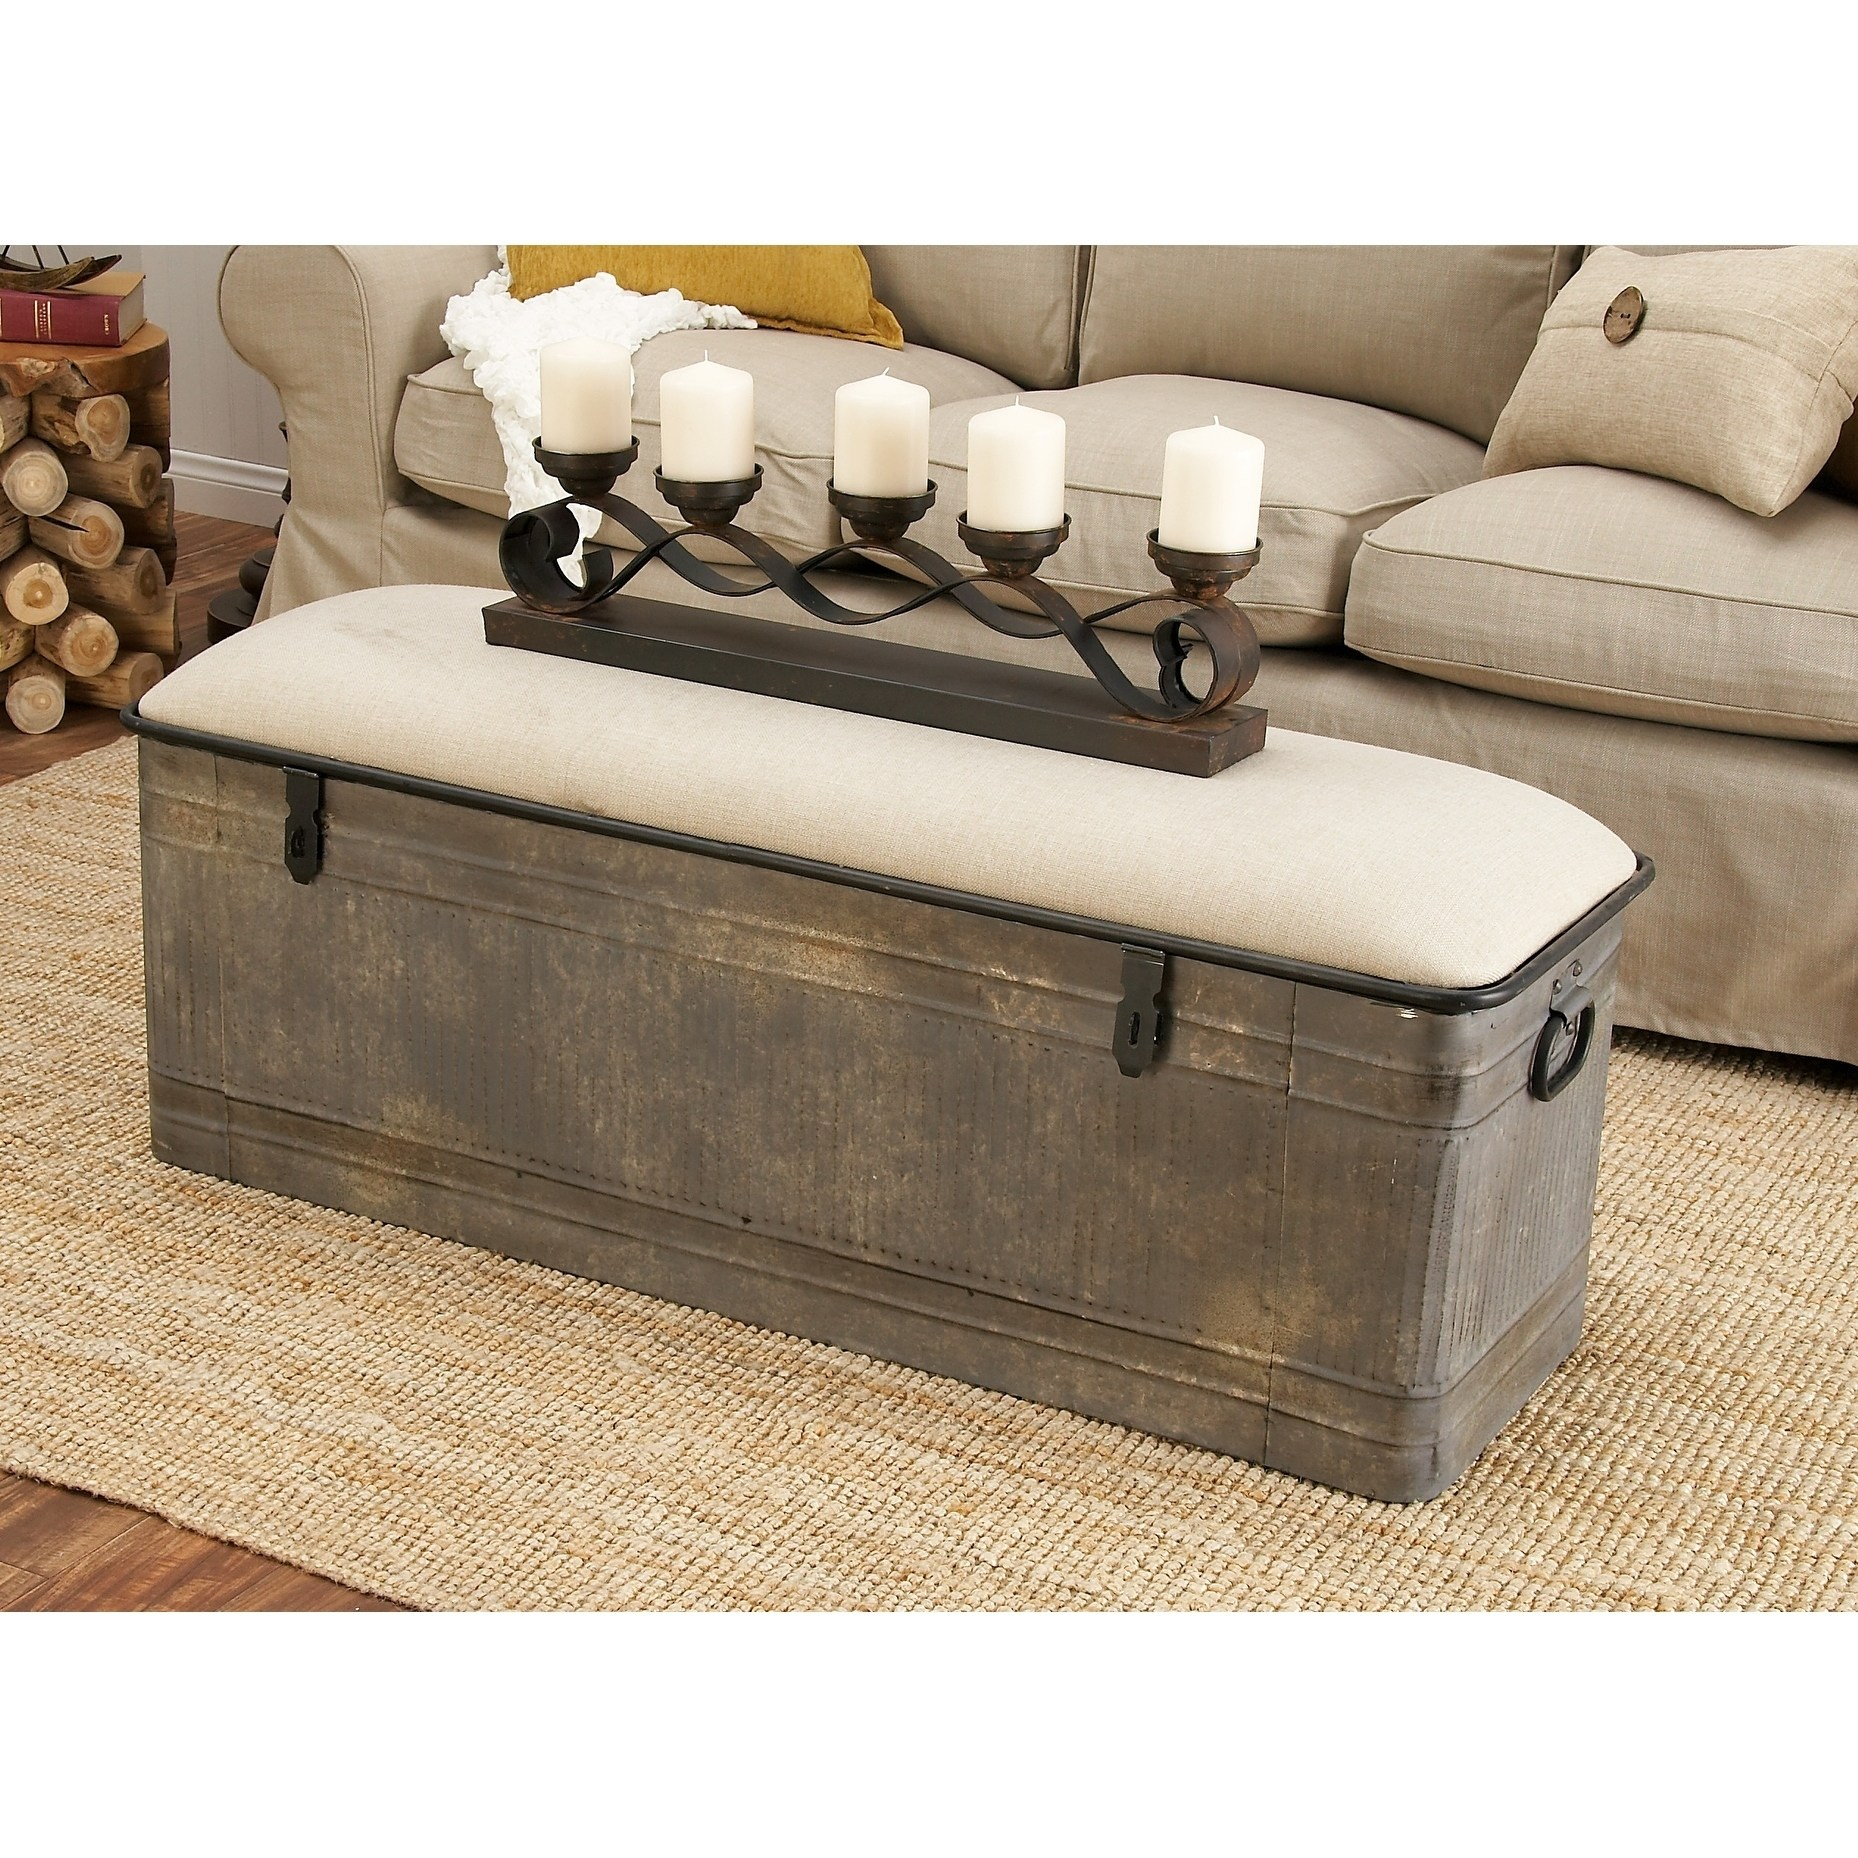 Merveilleux Product Image Decmode Farmhouse Horse Watering Trough Inspired Silver Metal Storage  Bench W/ Beige Cotton Seat